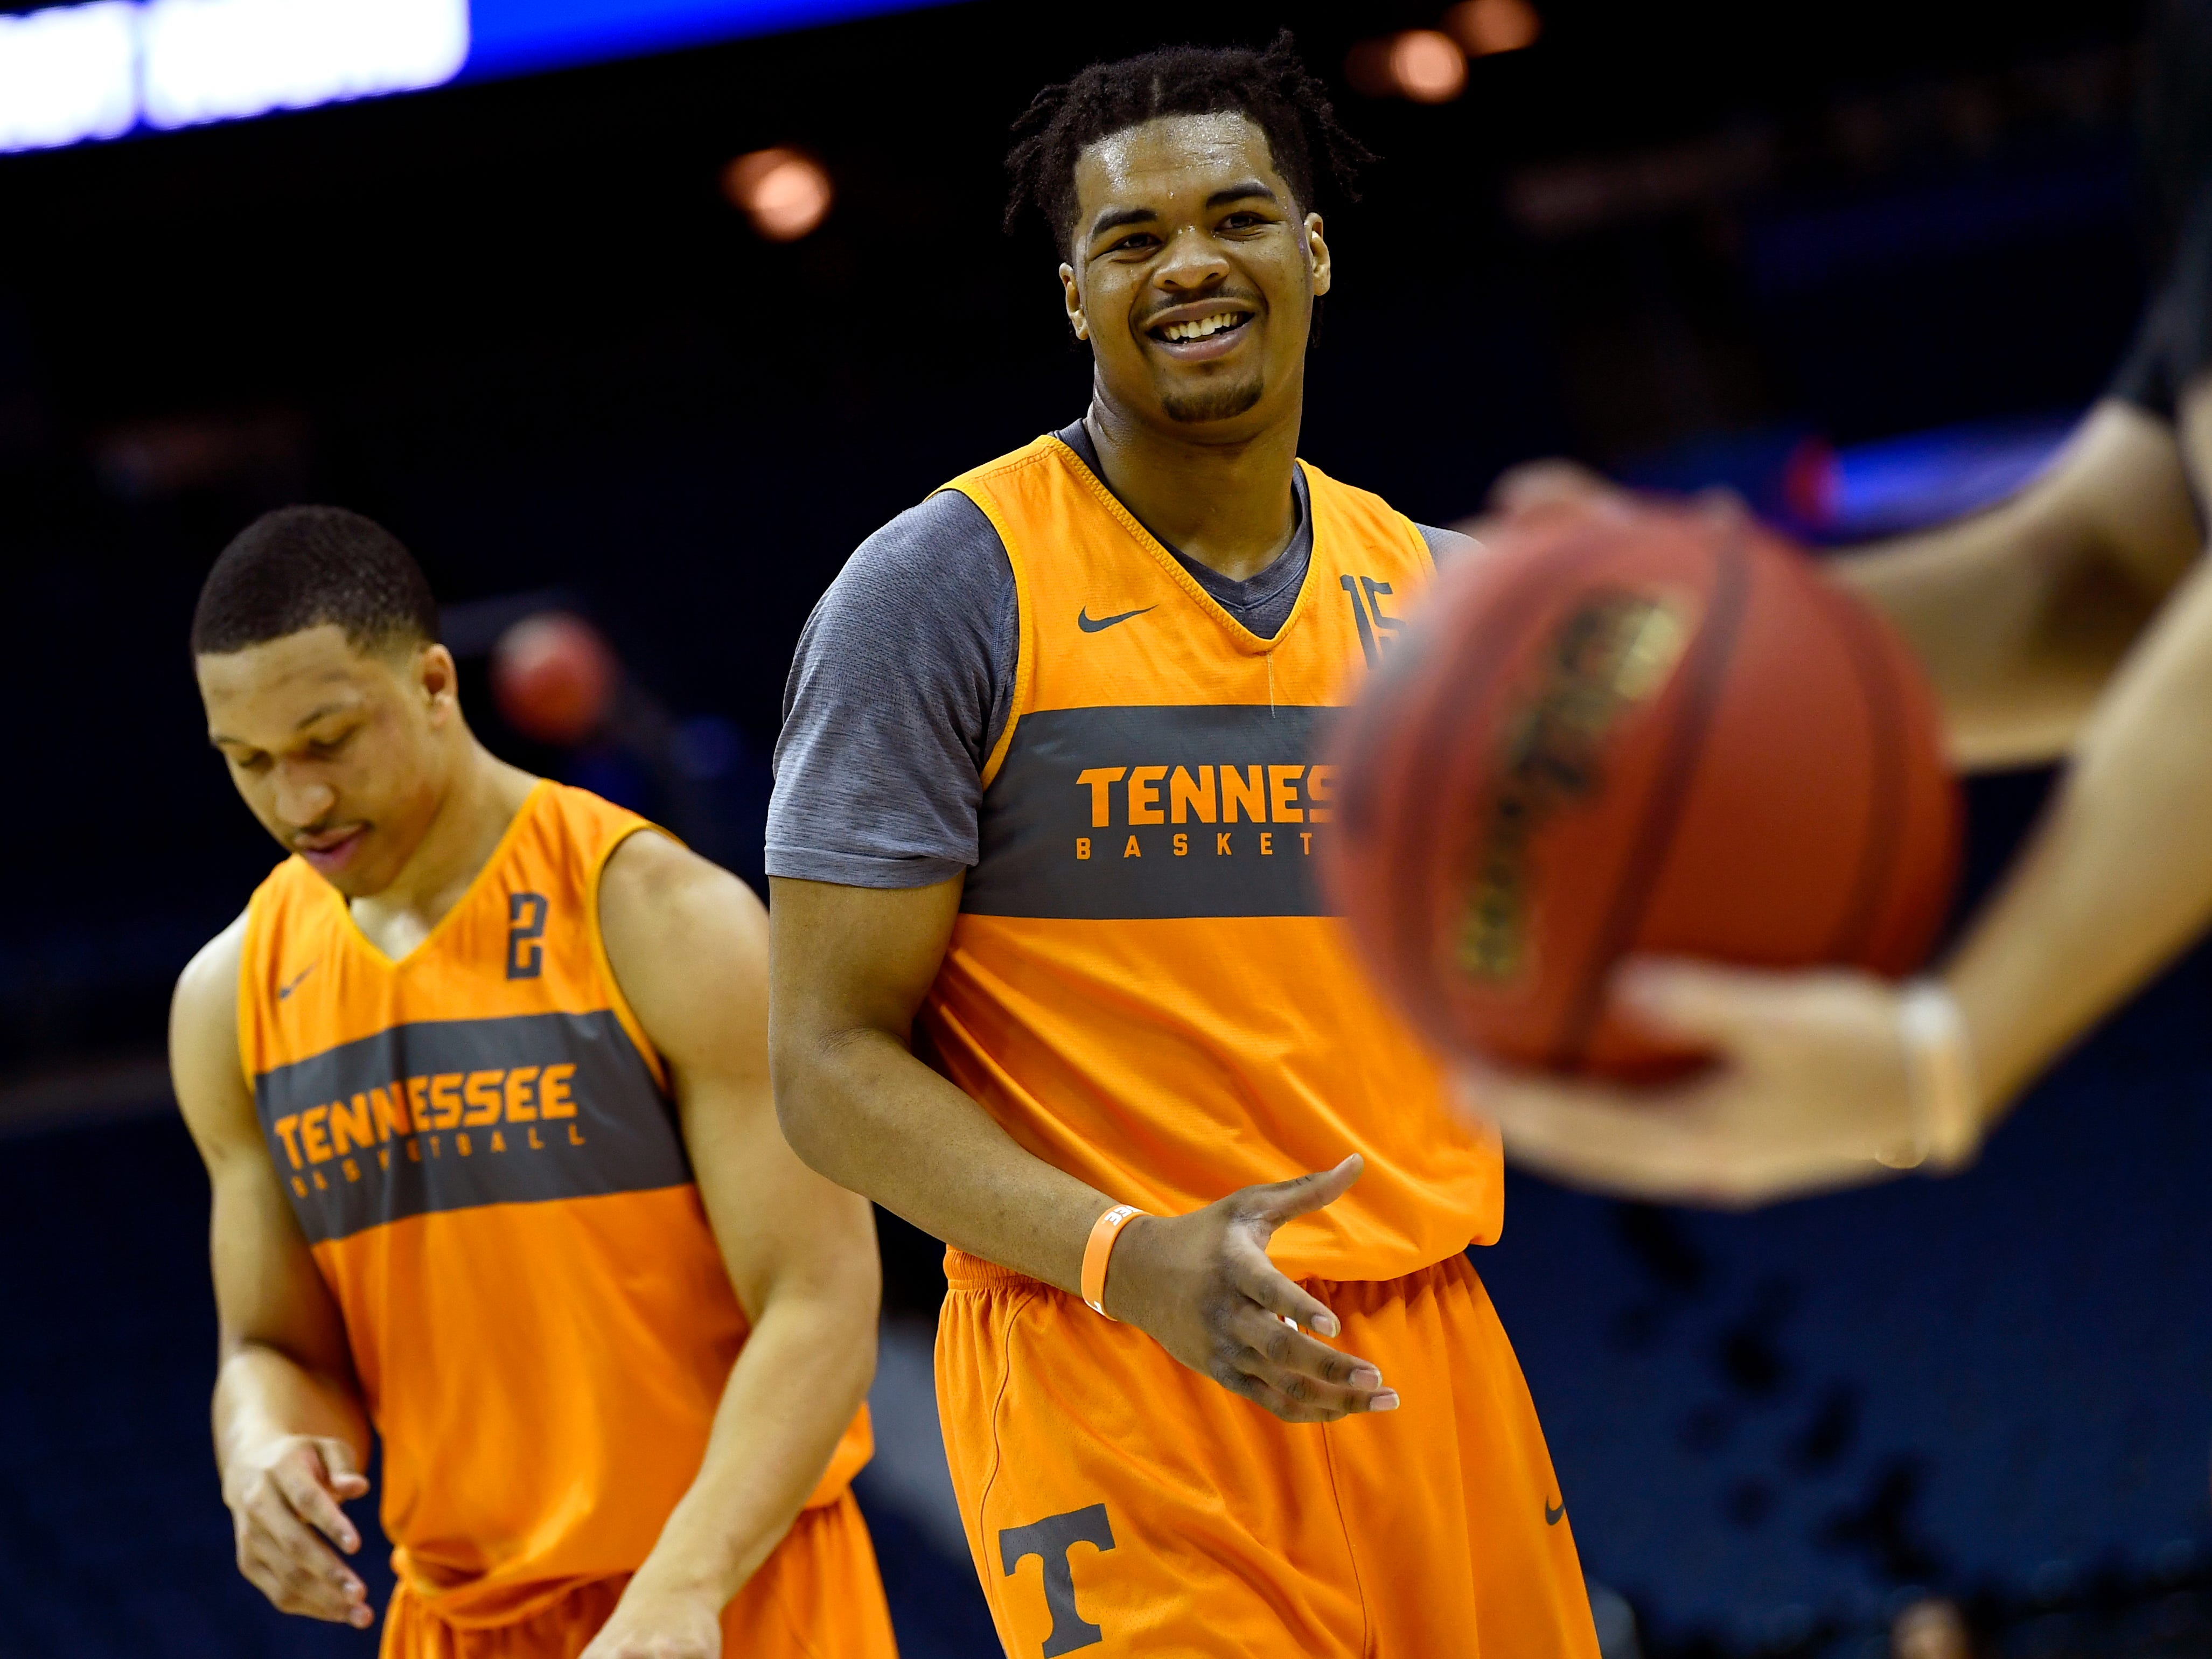 Tennessee forward Derrick Walker (15) during Tennessee's practice on Thursday, March 21, 2019, before their first round NCAA Tournament game against Colgate at Nationwide Arena in Columbus, Ohio.